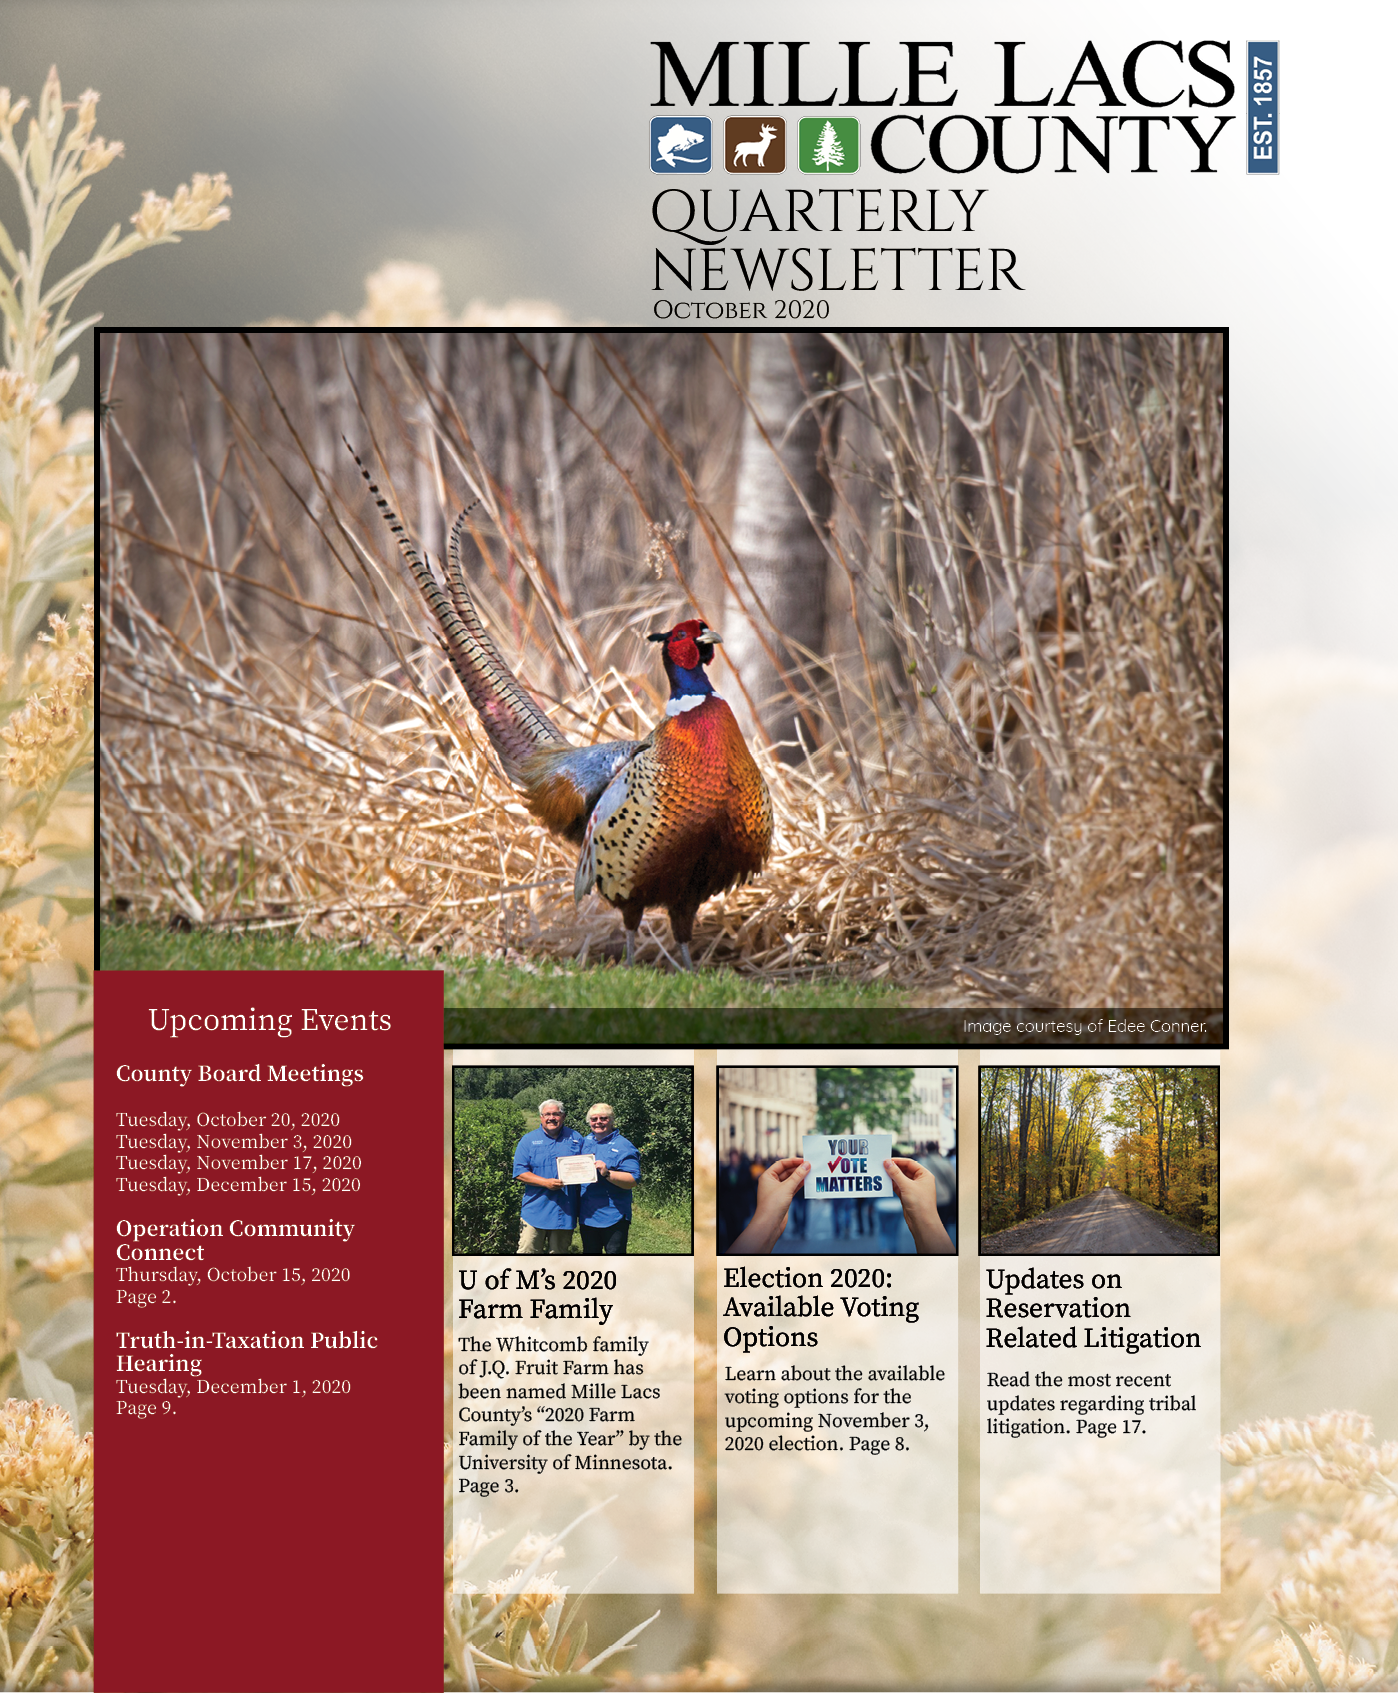 The front cover of the Mille Lacs County Quarterly Newsletter October 2020.